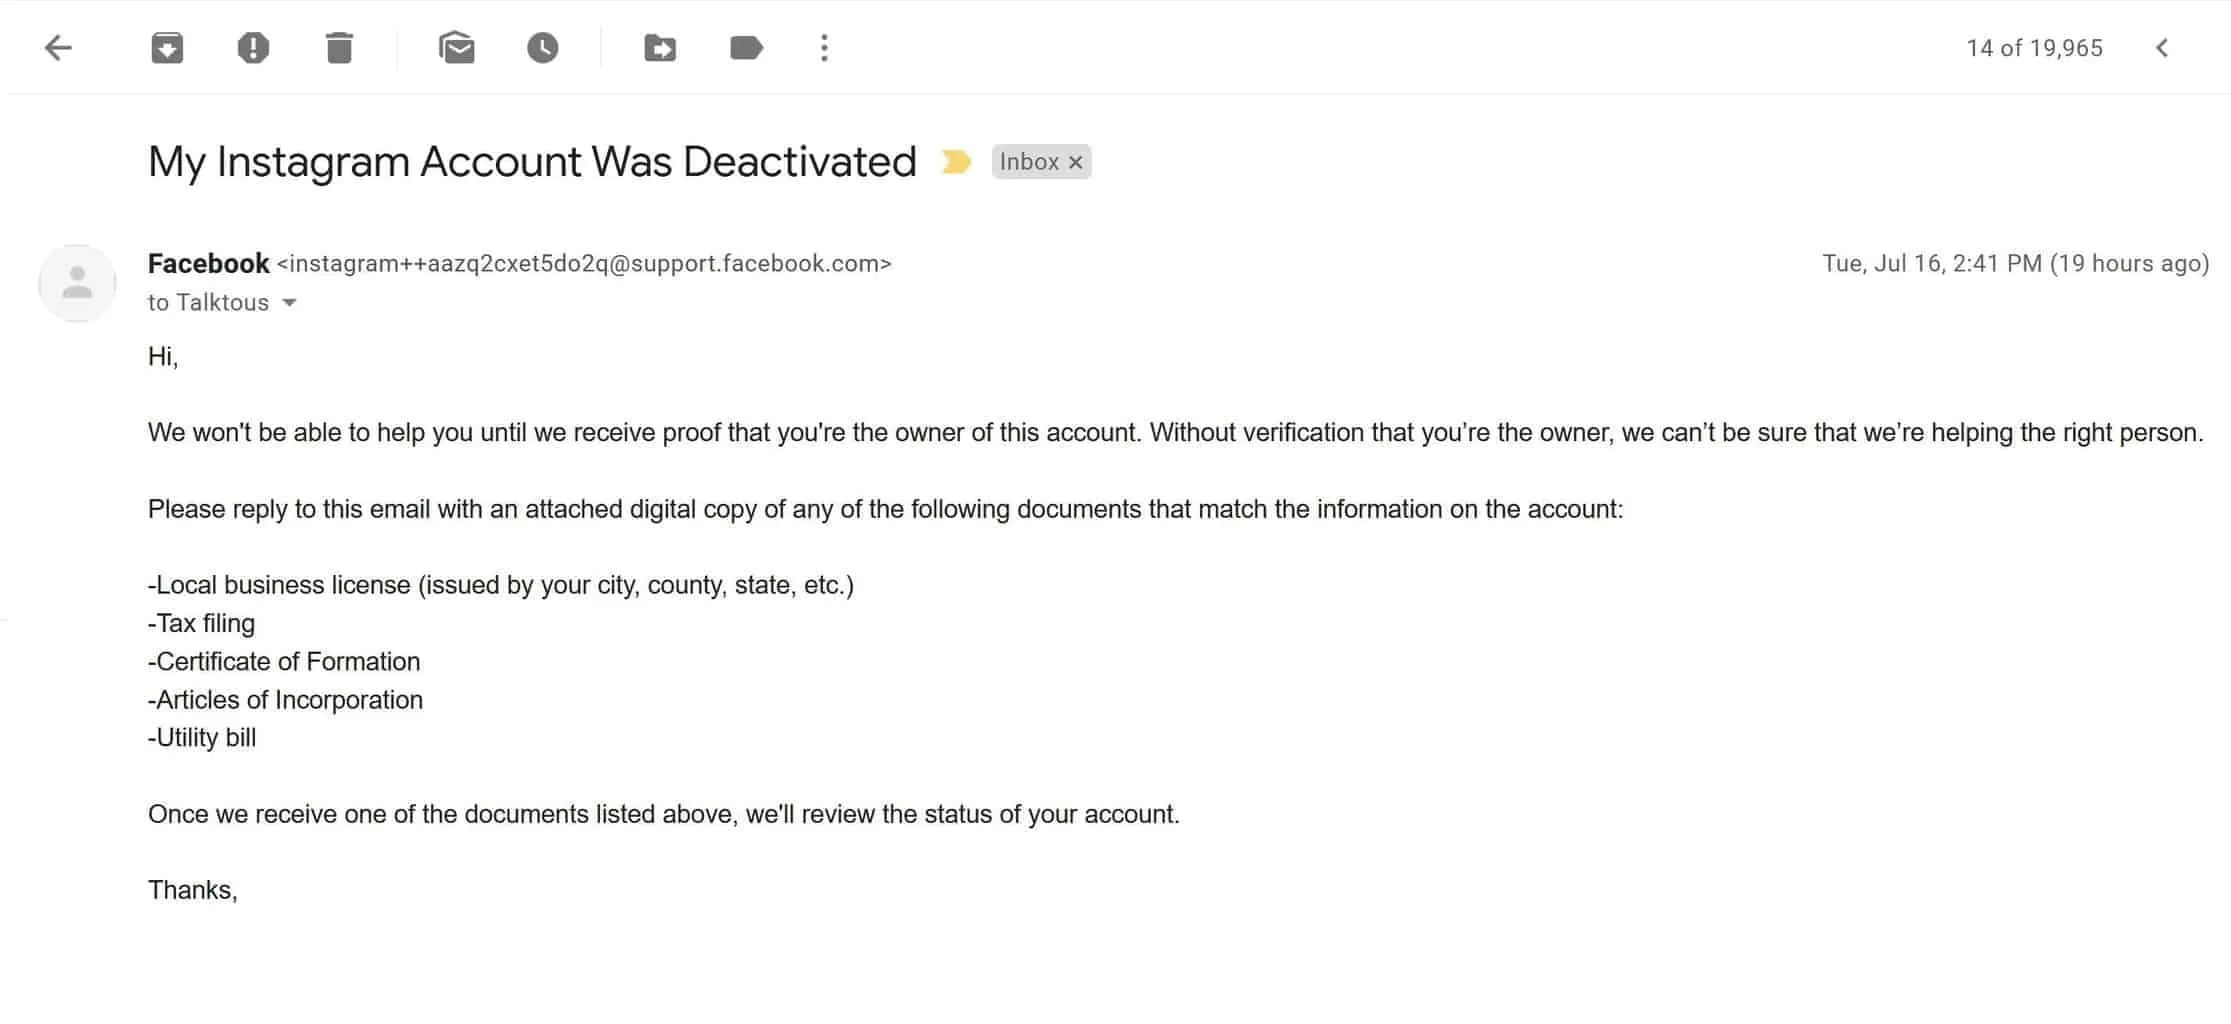 Instagram AI sent me an email requesting another business document in order to lift my account ban